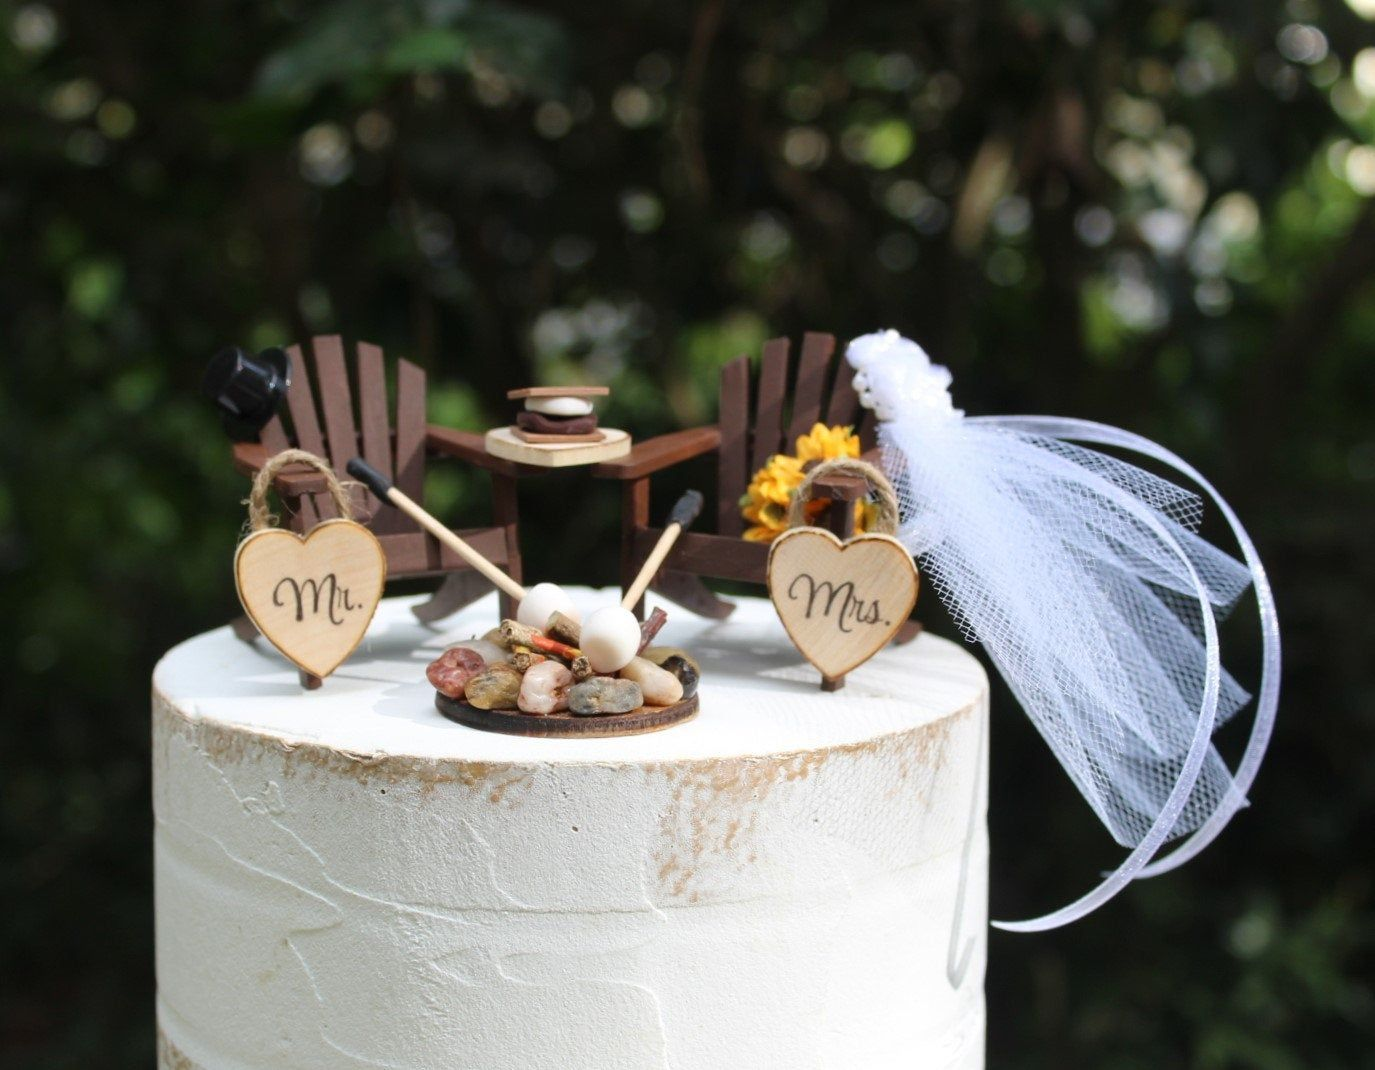 Wedding Cake Topper Camping Fire Pit Marshmallows Etsy Wedding Cake Toppers Custom Wedding Cakes Rustic Wedding Cake Toppers